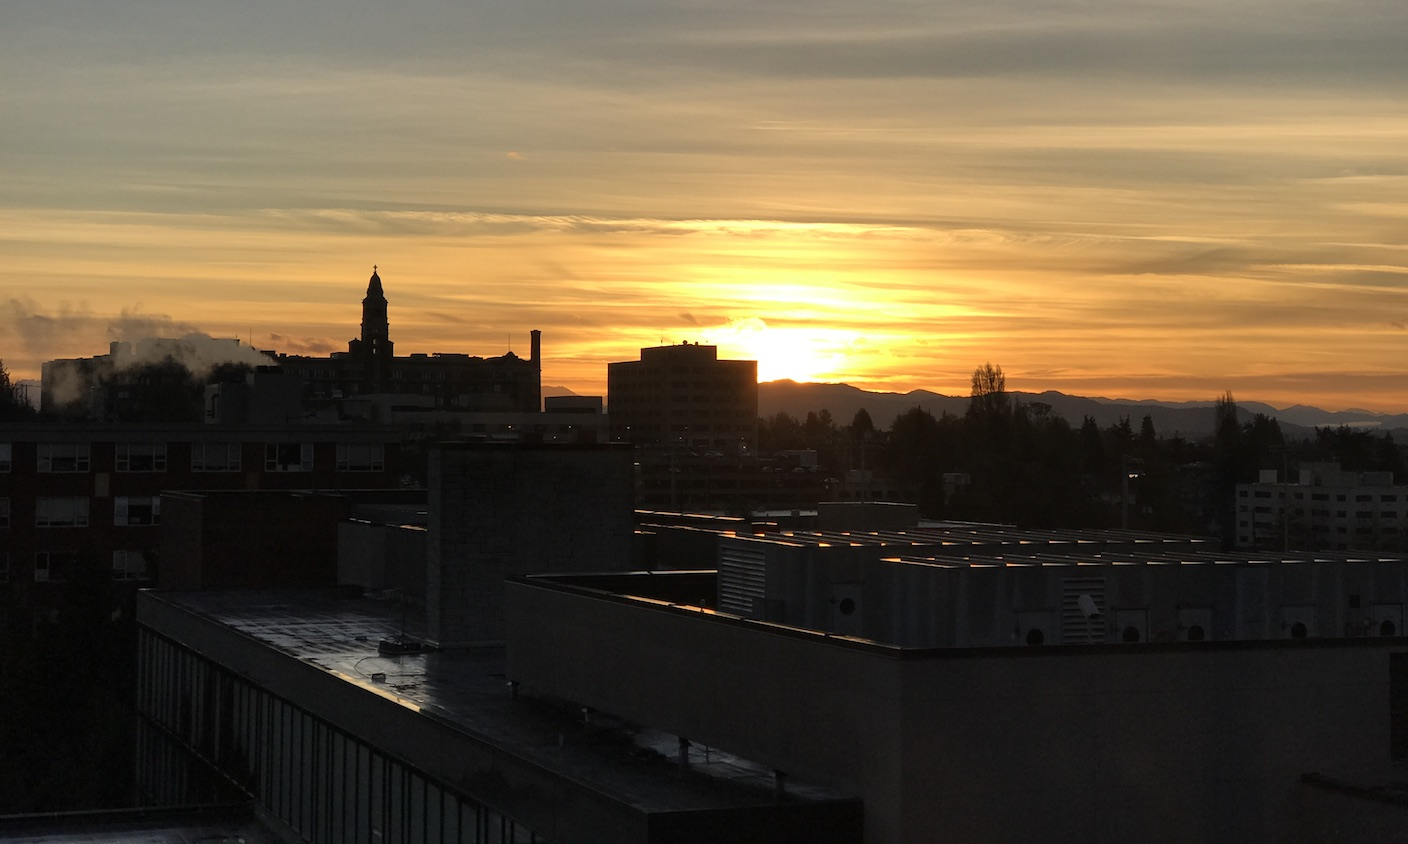 Seattle University sunrise over building tops